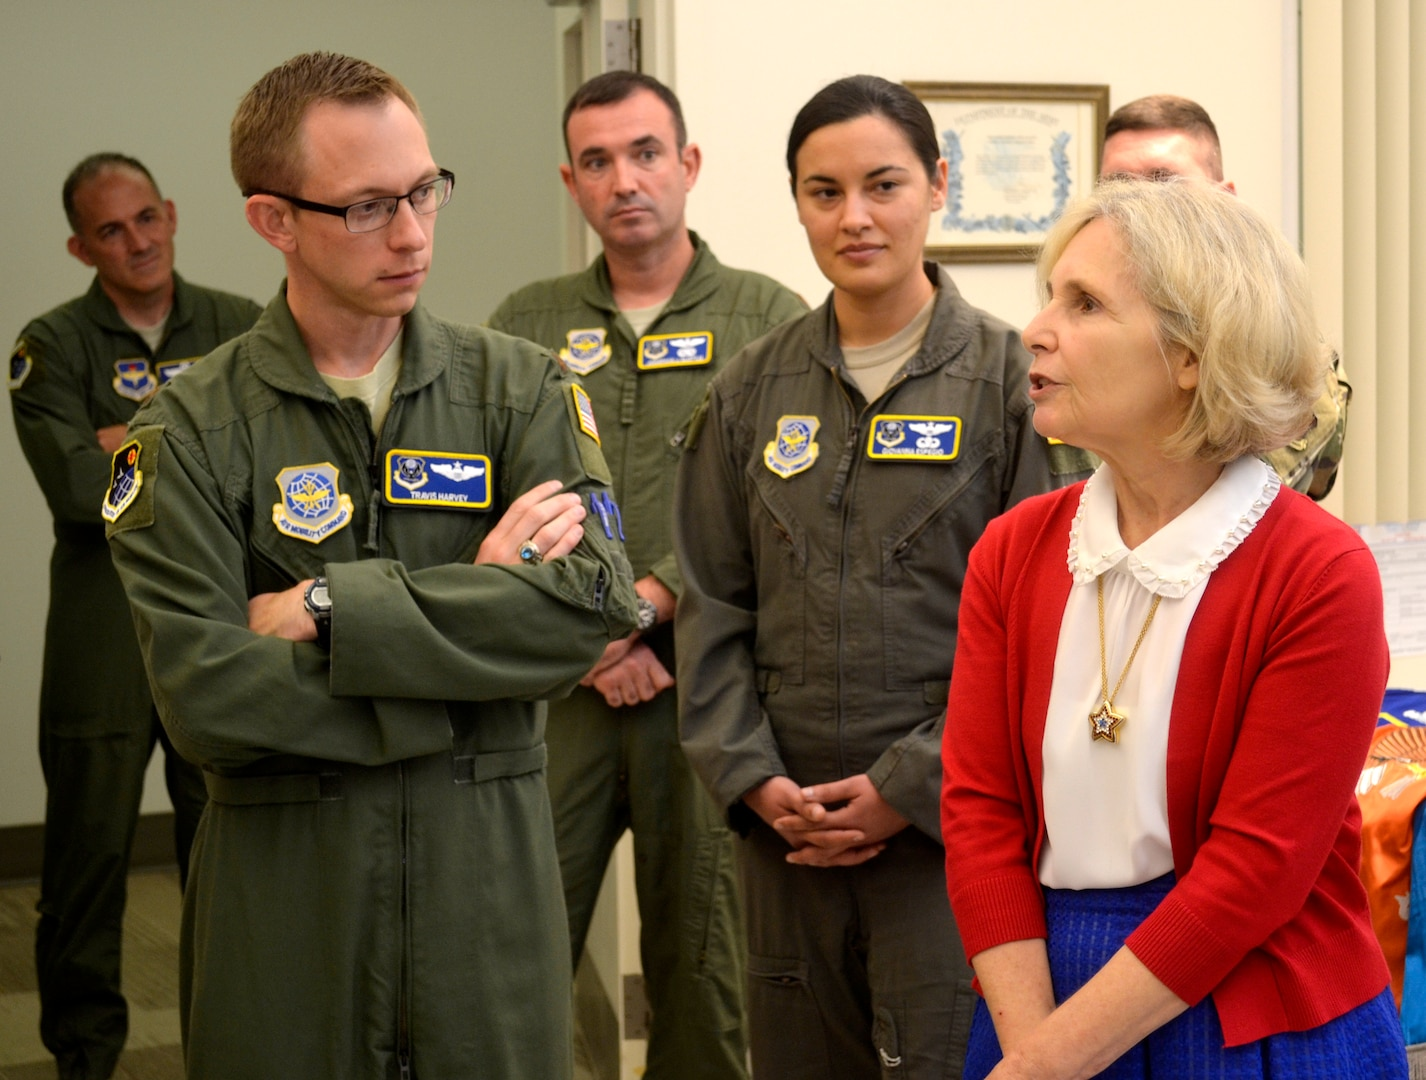 DLA Troop Support flag room supervisor Linda Farrell, right, speaks to students from the U.S. Air Force Expeditionary Operations School during a tour August 26, 2019 in Philadelphia. The students toured DLA to get an overview of the agency's services and mission.